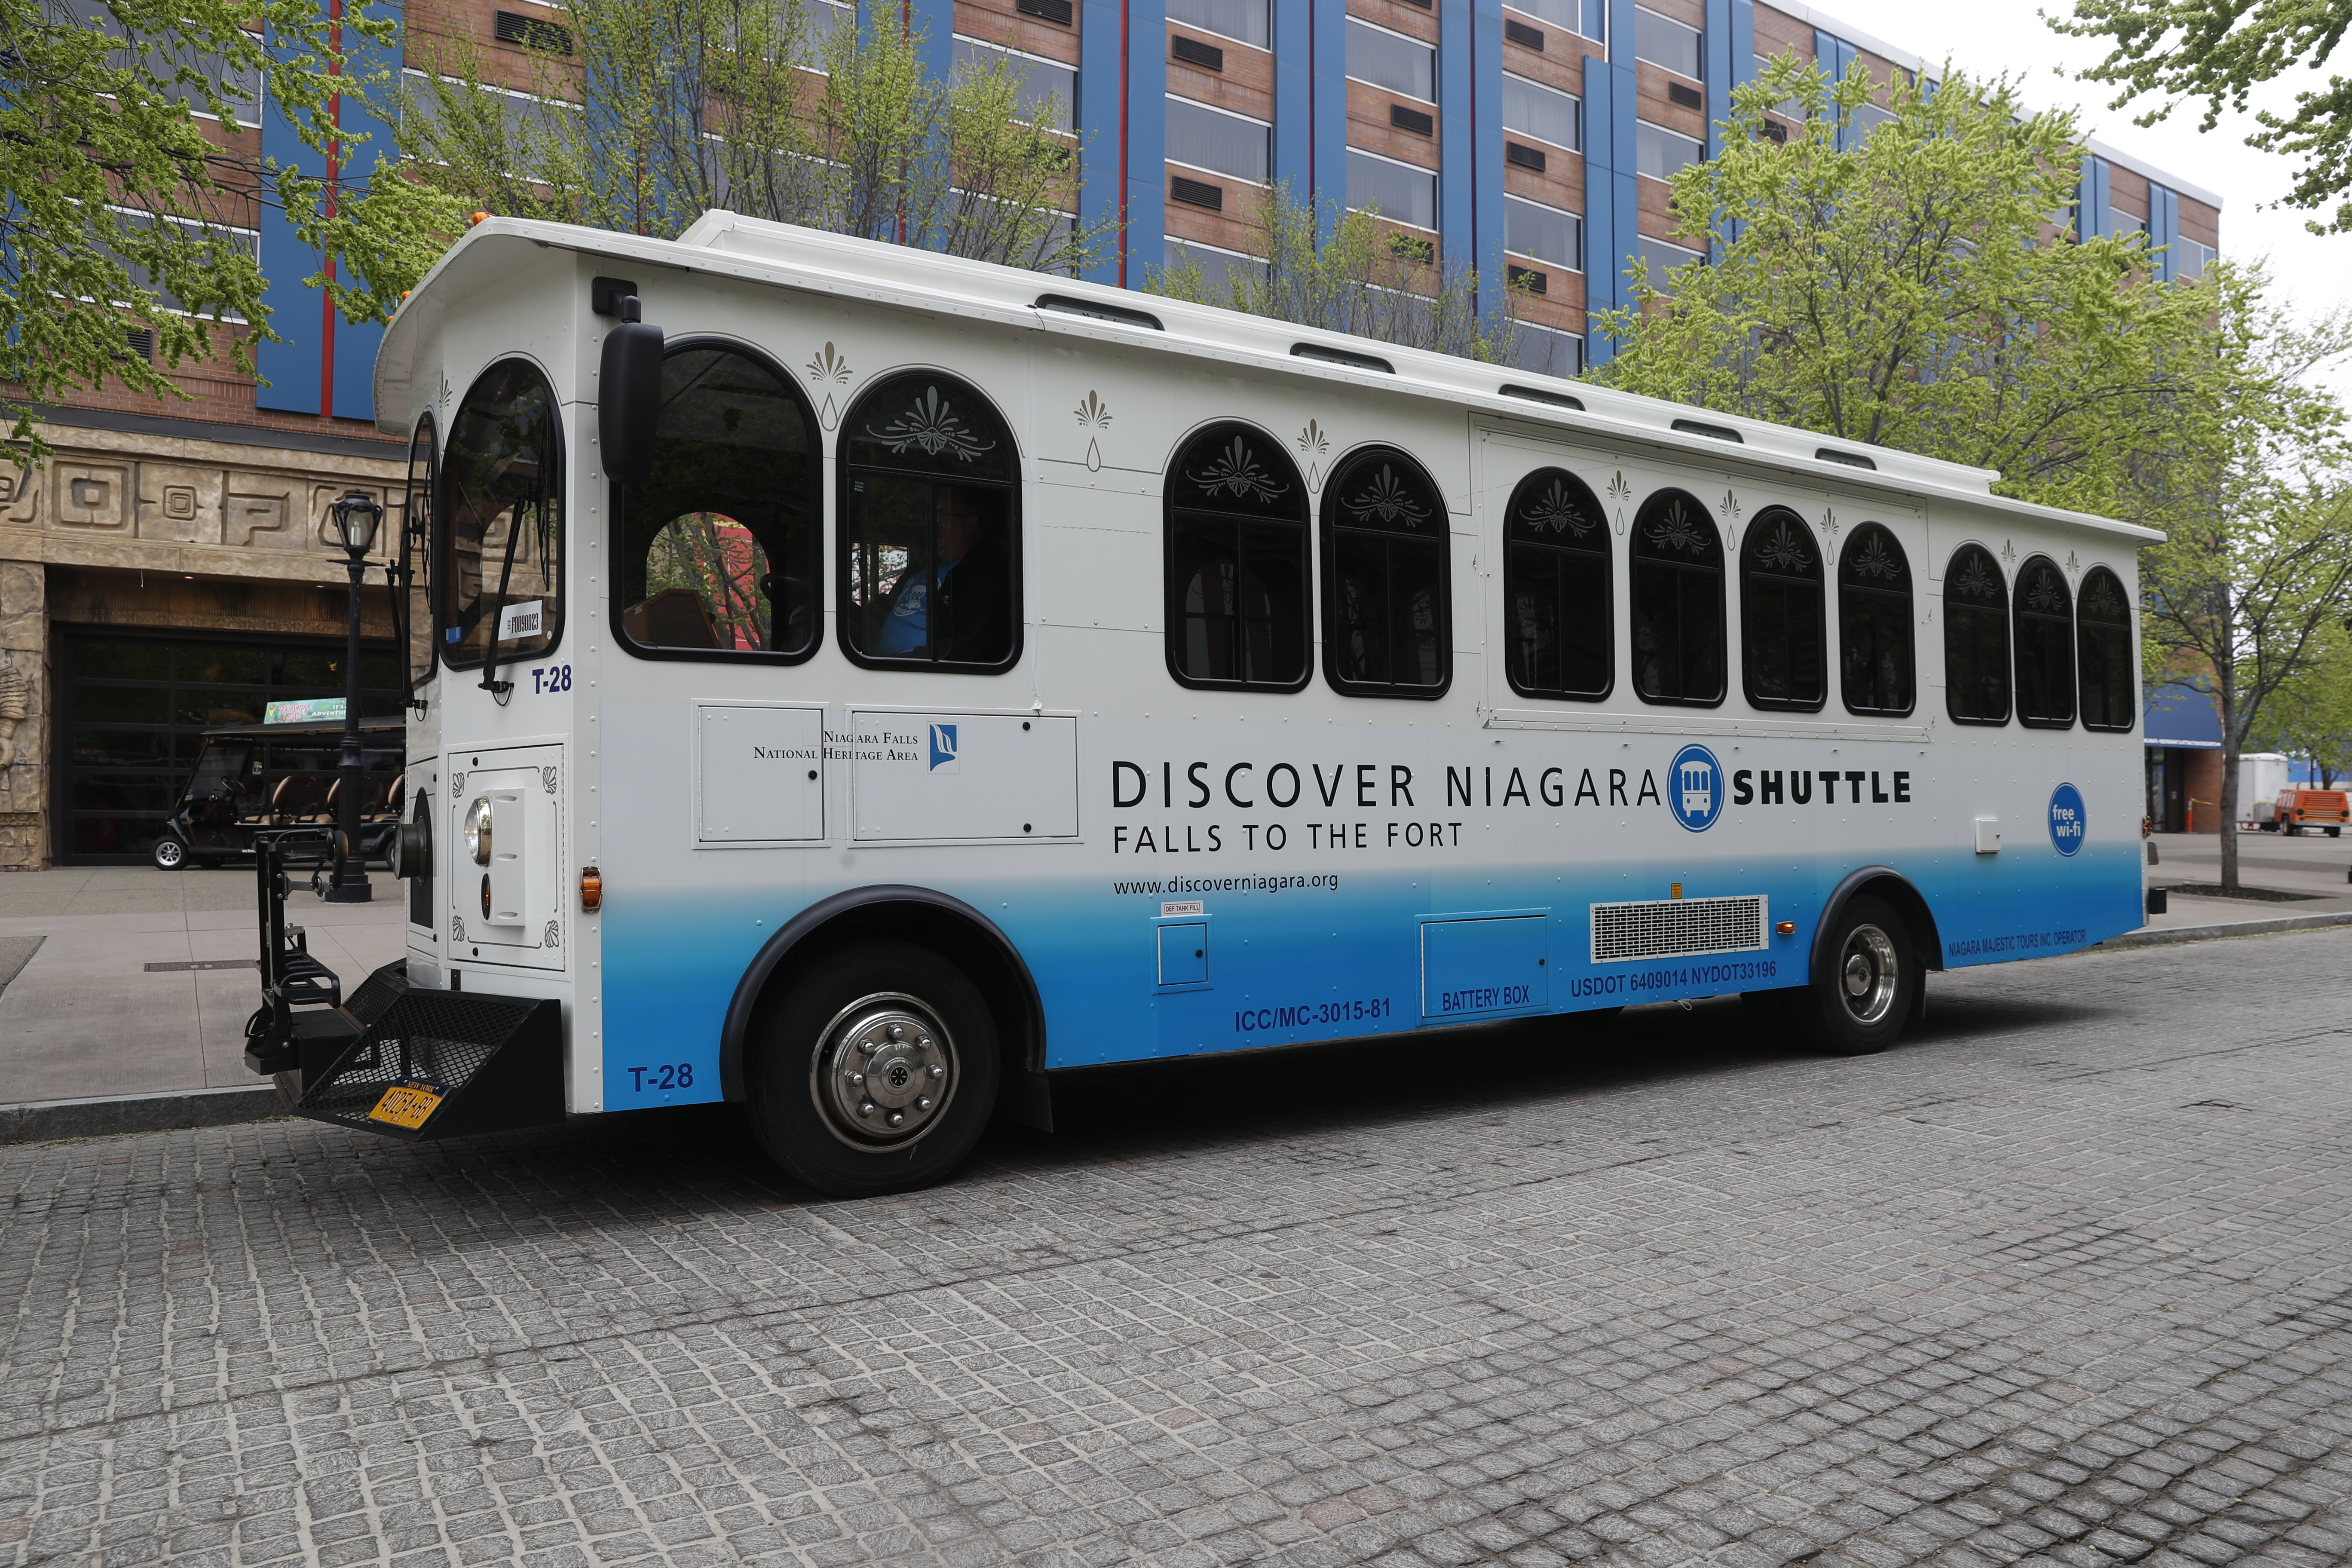 The Discover Niagara Shuttle has begun its  weekend service and will start daily service May 19.  Last year, it carried more than 33,000 riders to more than a dozen business areas and historic sites from Niagara Falls to  Old Fort Niagara. (John Hickey/Buffalo News)